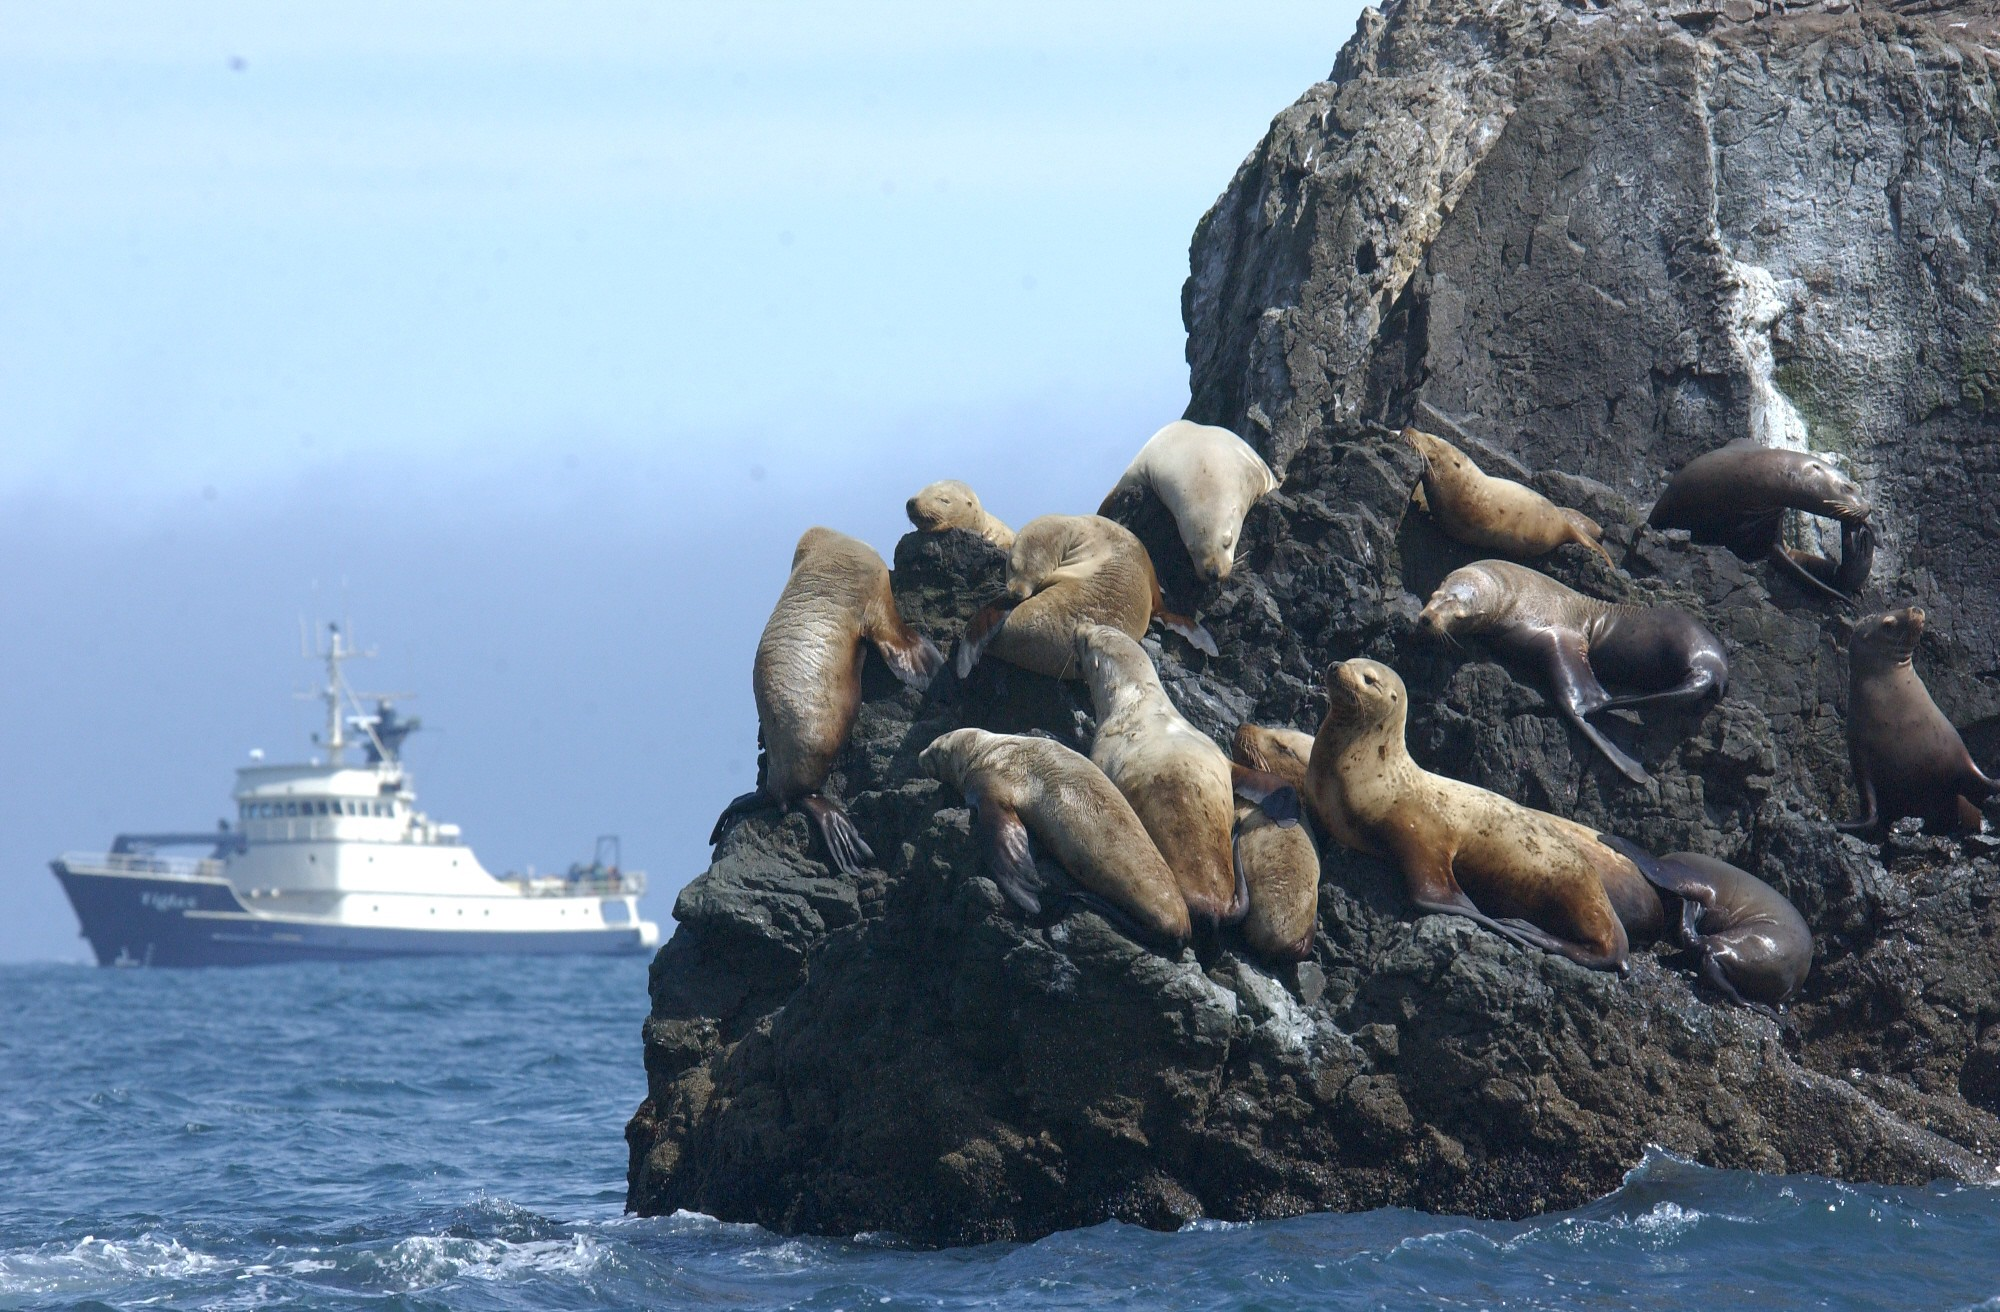 Steller's sealions in the Gulf of Alaska with the R/V Tiglax in the background by USFWS